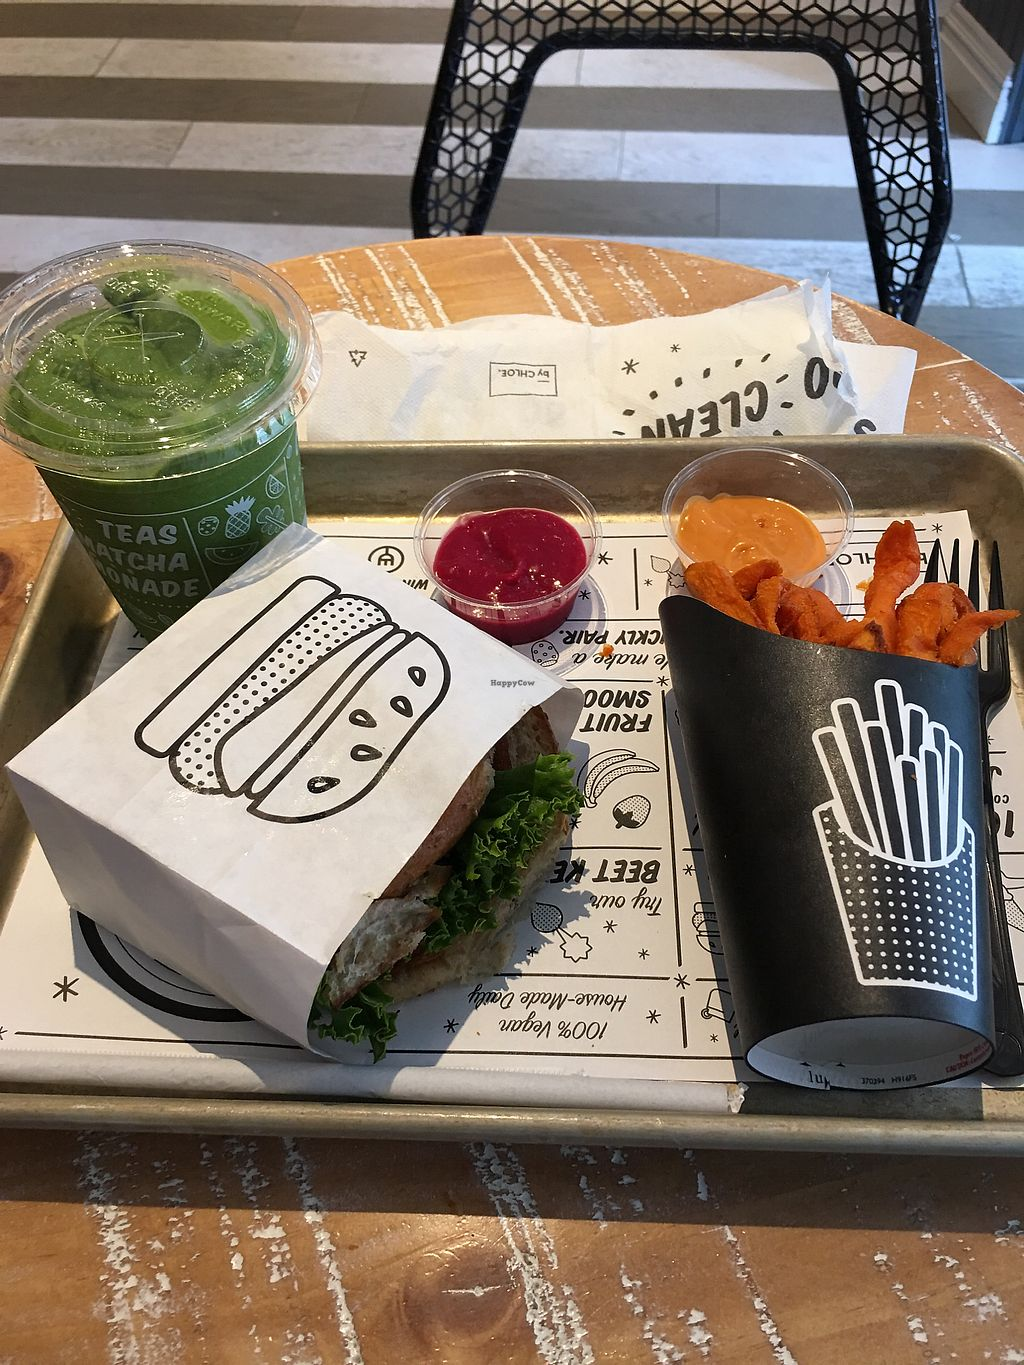 """Photo of By Chloe - Soho  by <a href=""""/members/profile/Rucri"""">Rucri</a> <br/>An all American lunch but healthier! <br/> August 11, 2017  - <a href='/contact/abuse/image/88571/291513'>Report</a>"""